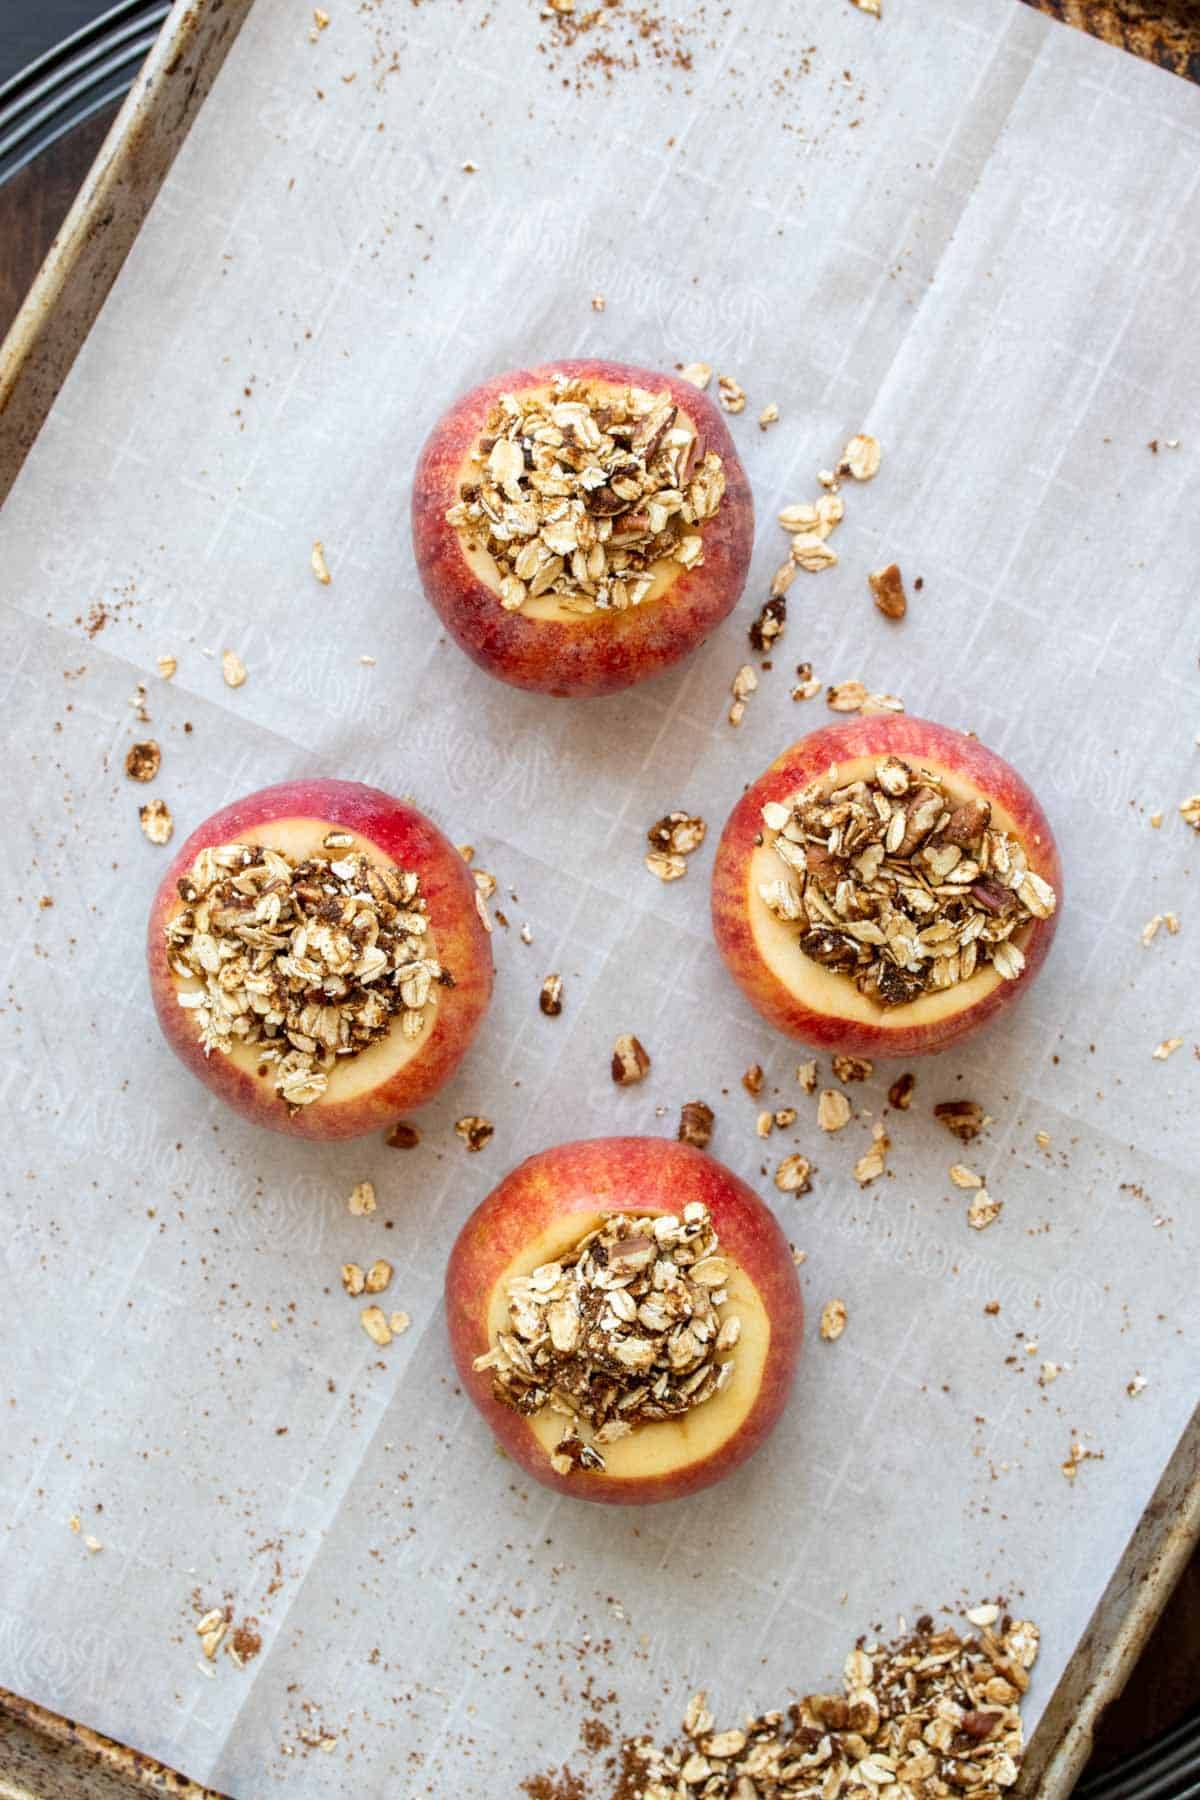 Four raw cored apples topped with an oat filling